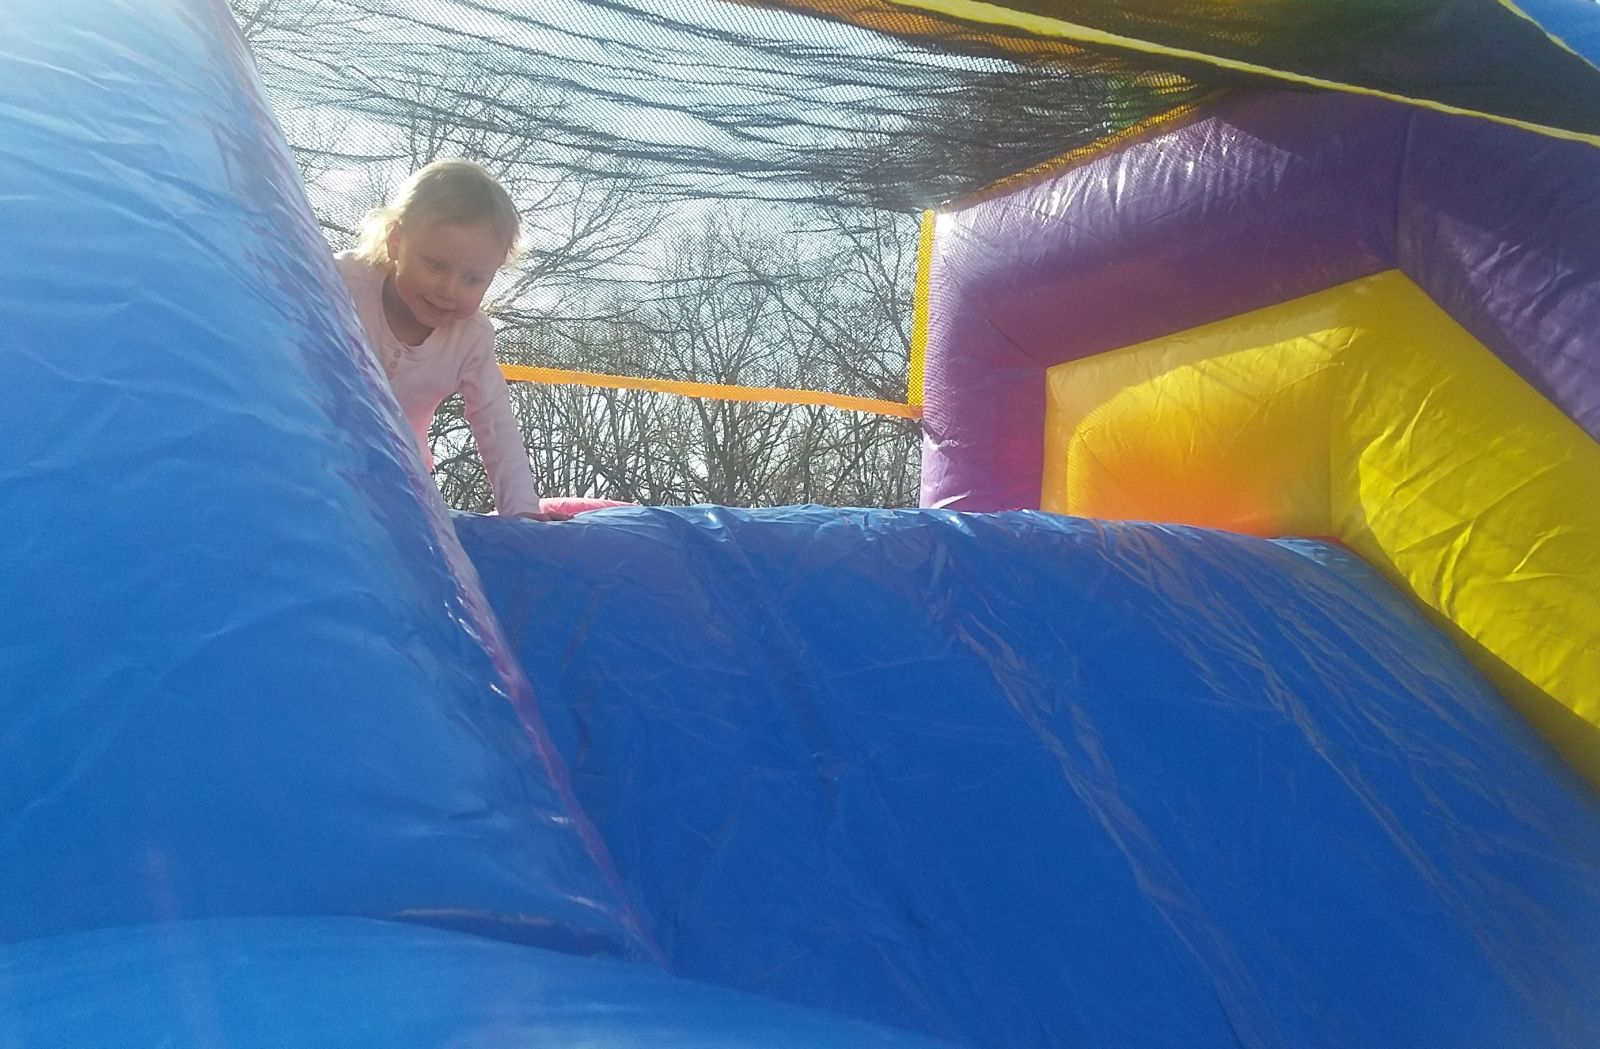 Slide with small girl on obstacle course